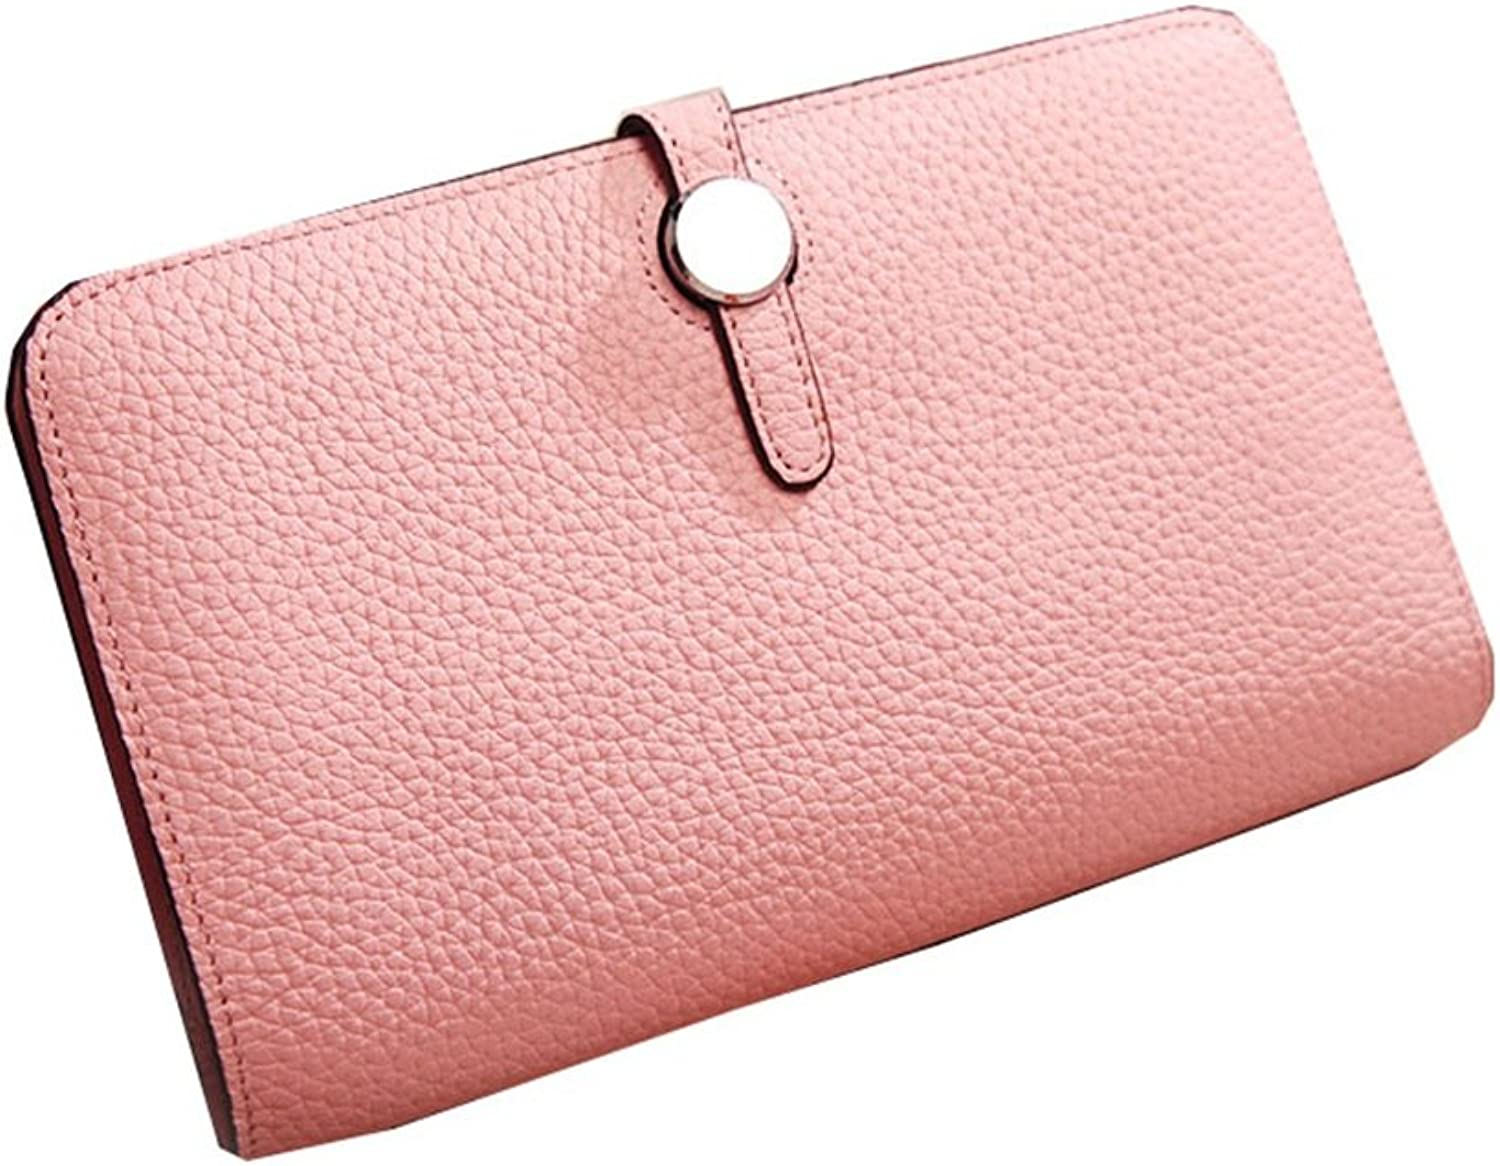 Sturdy Fashian Leather Contracted Joker Unisex Wallet High-Capacity Card Handbag Hand Handbag Can Put A Mobile Phone Women Men Lady Large Capacity (color   Pink)